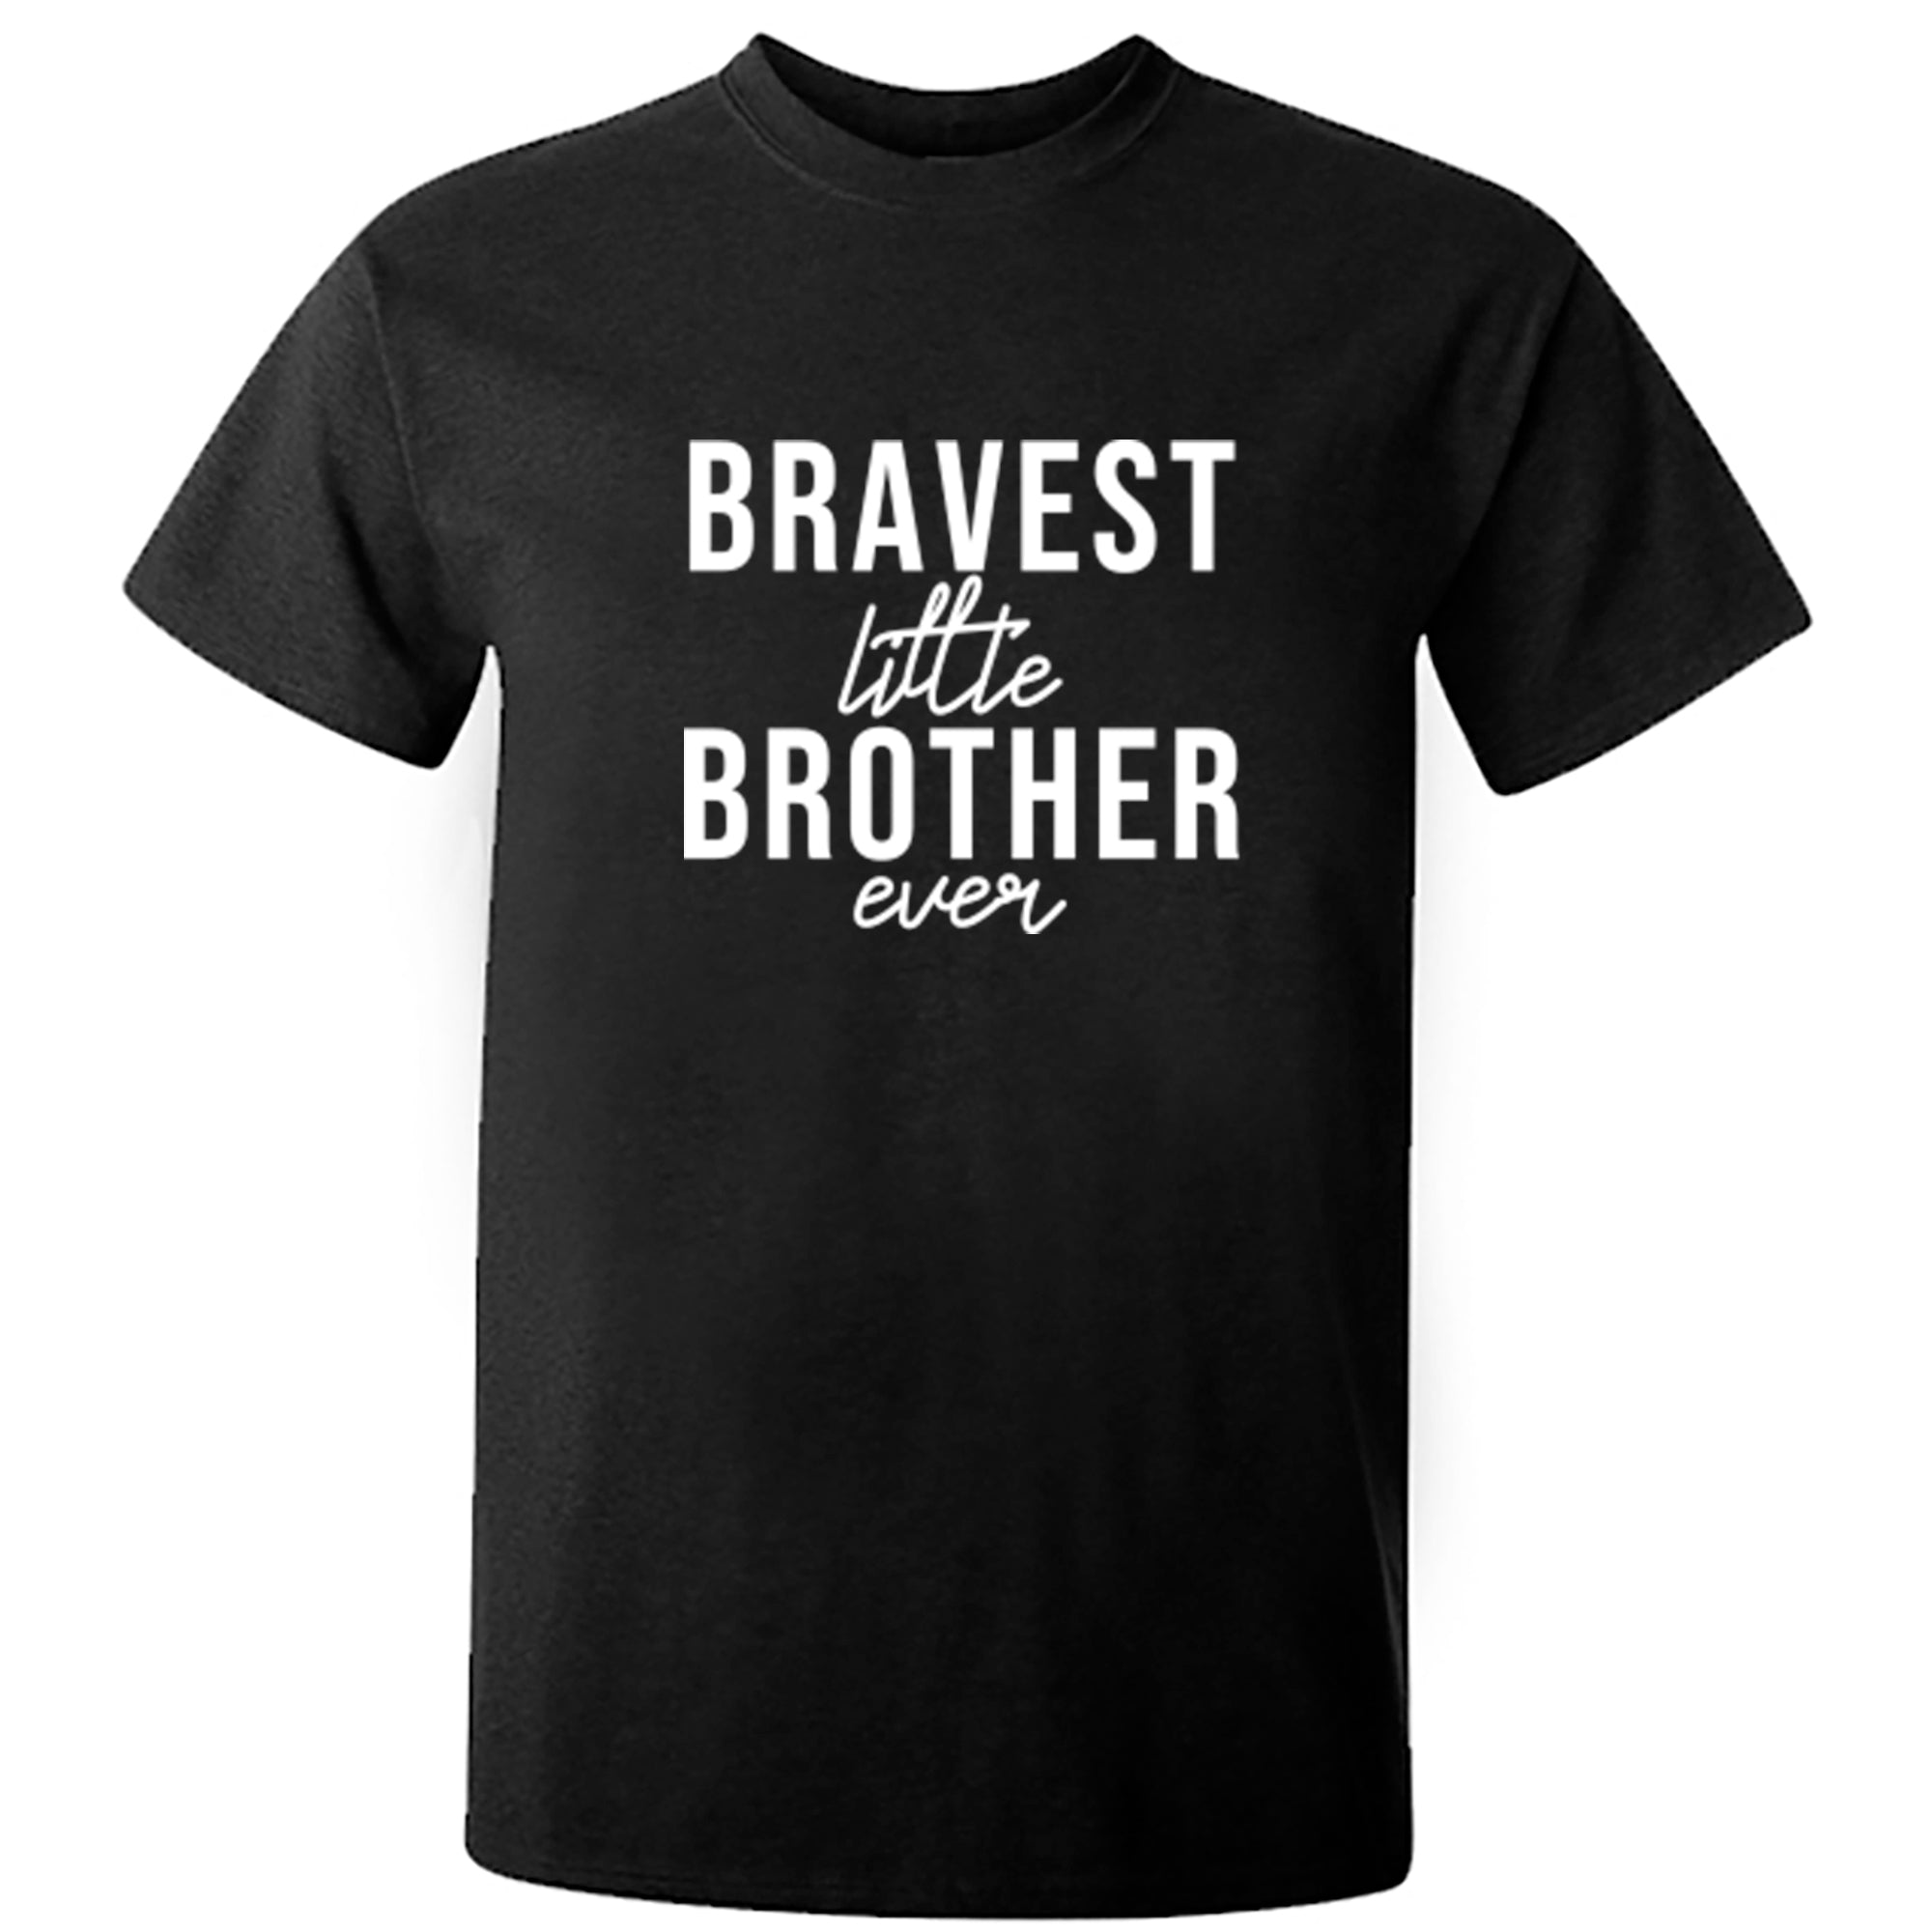 Bravest Little Brother Ever Unisex Fit T-Shirt S0520 - Illustrated Identity Ltd.